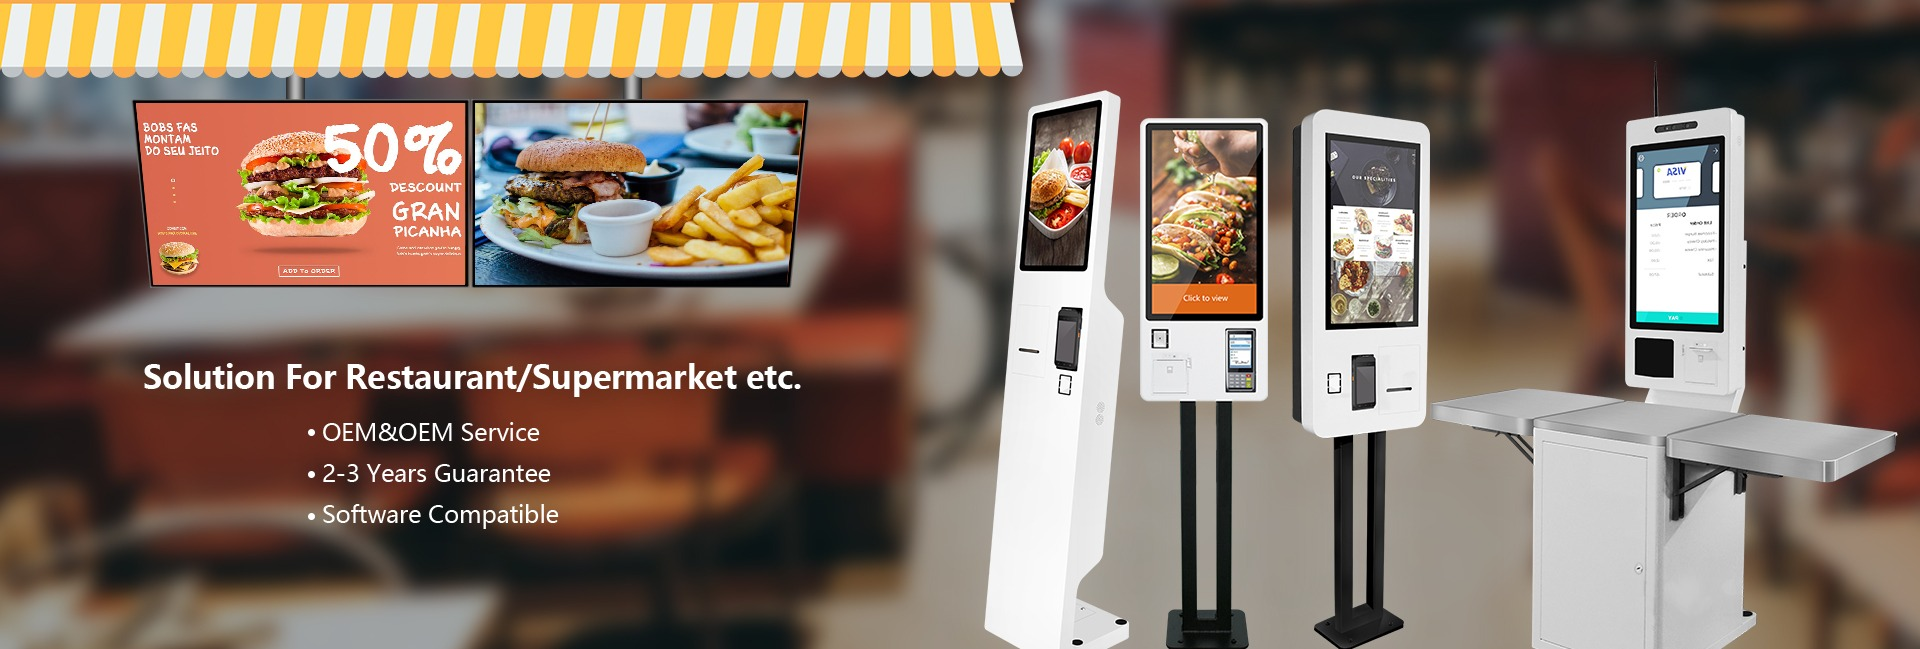 small business epos Digital Screens and self order kiosk